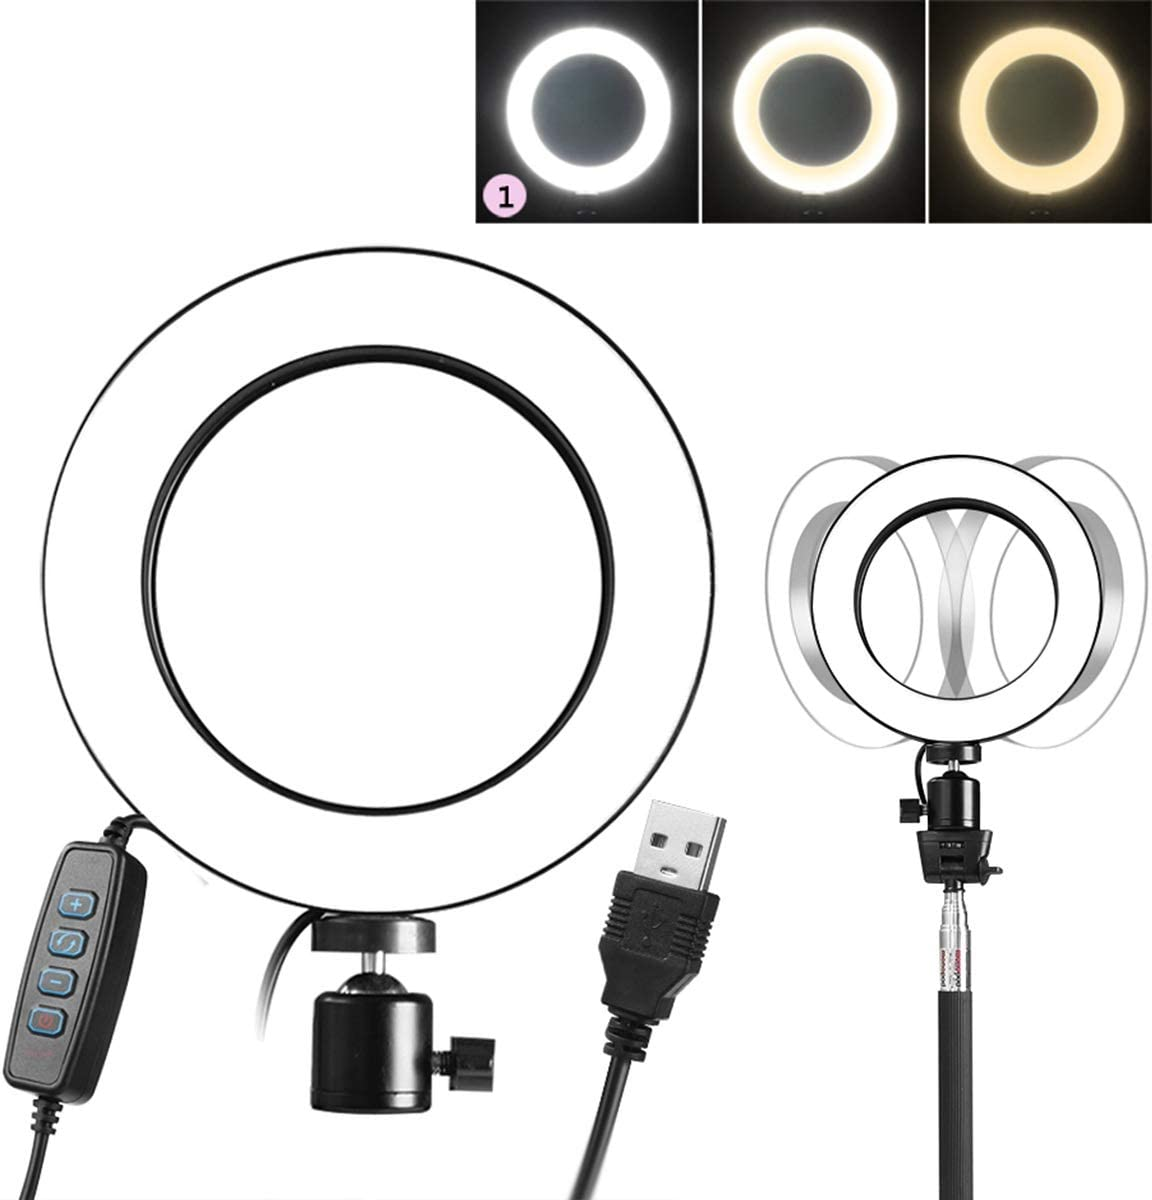 Best-ycldcyp Fill-in Light Ring Photography Selfie Light Photo Lamp Table Mini Tripod Lights 3 Colors Adjustable Brightness USB Powered Universal 1//4 Screw Hole for Tripod, Tripod NOT Included